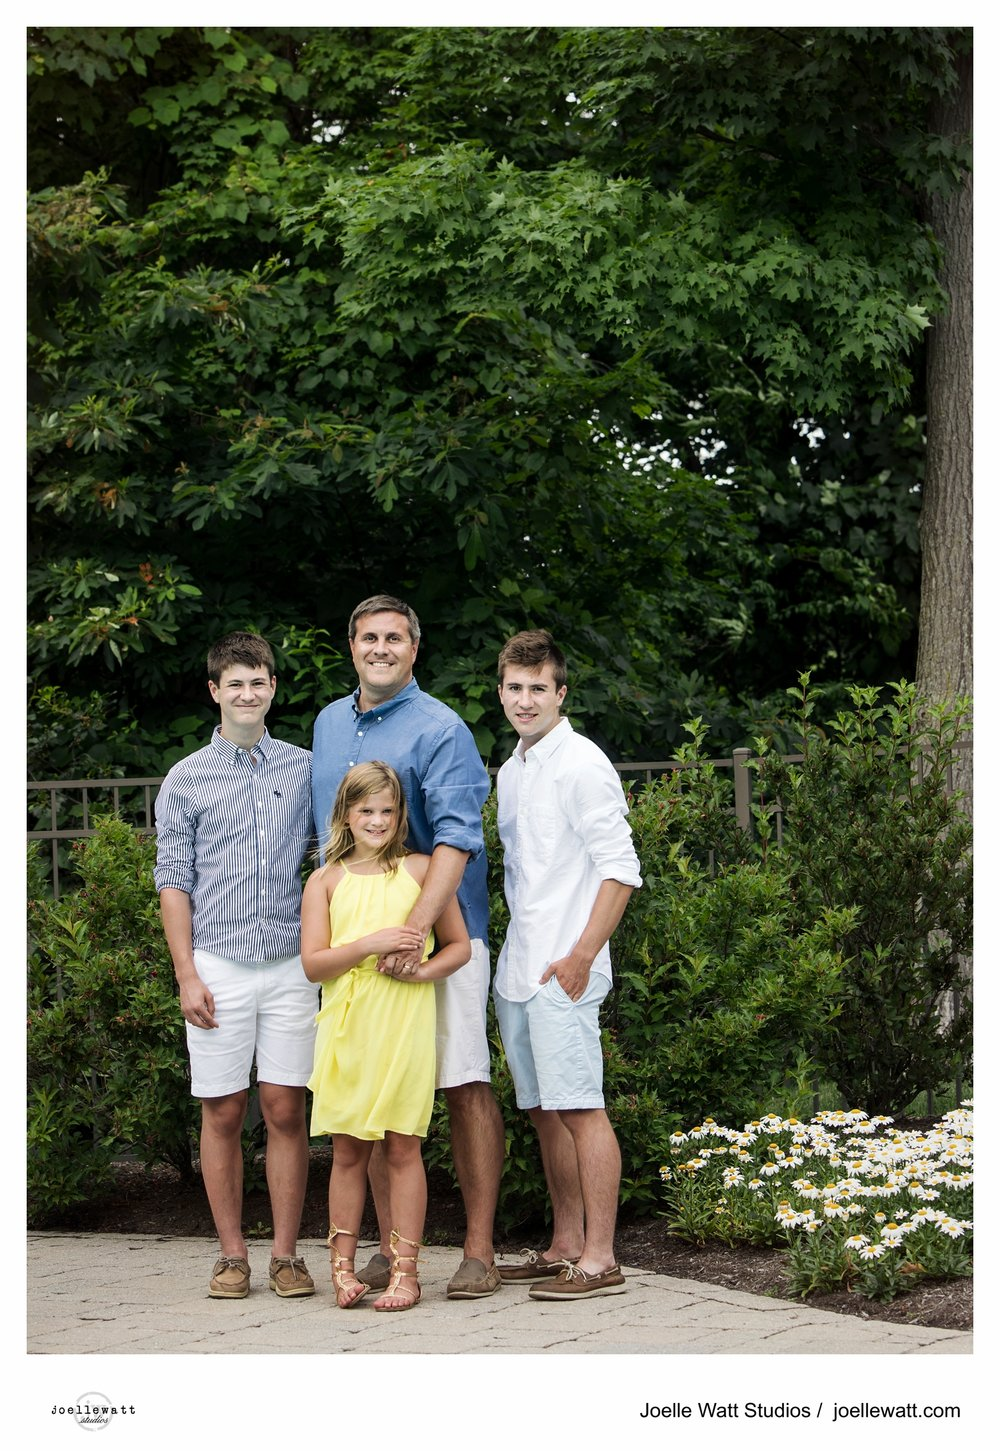 peterson family 5.jpg